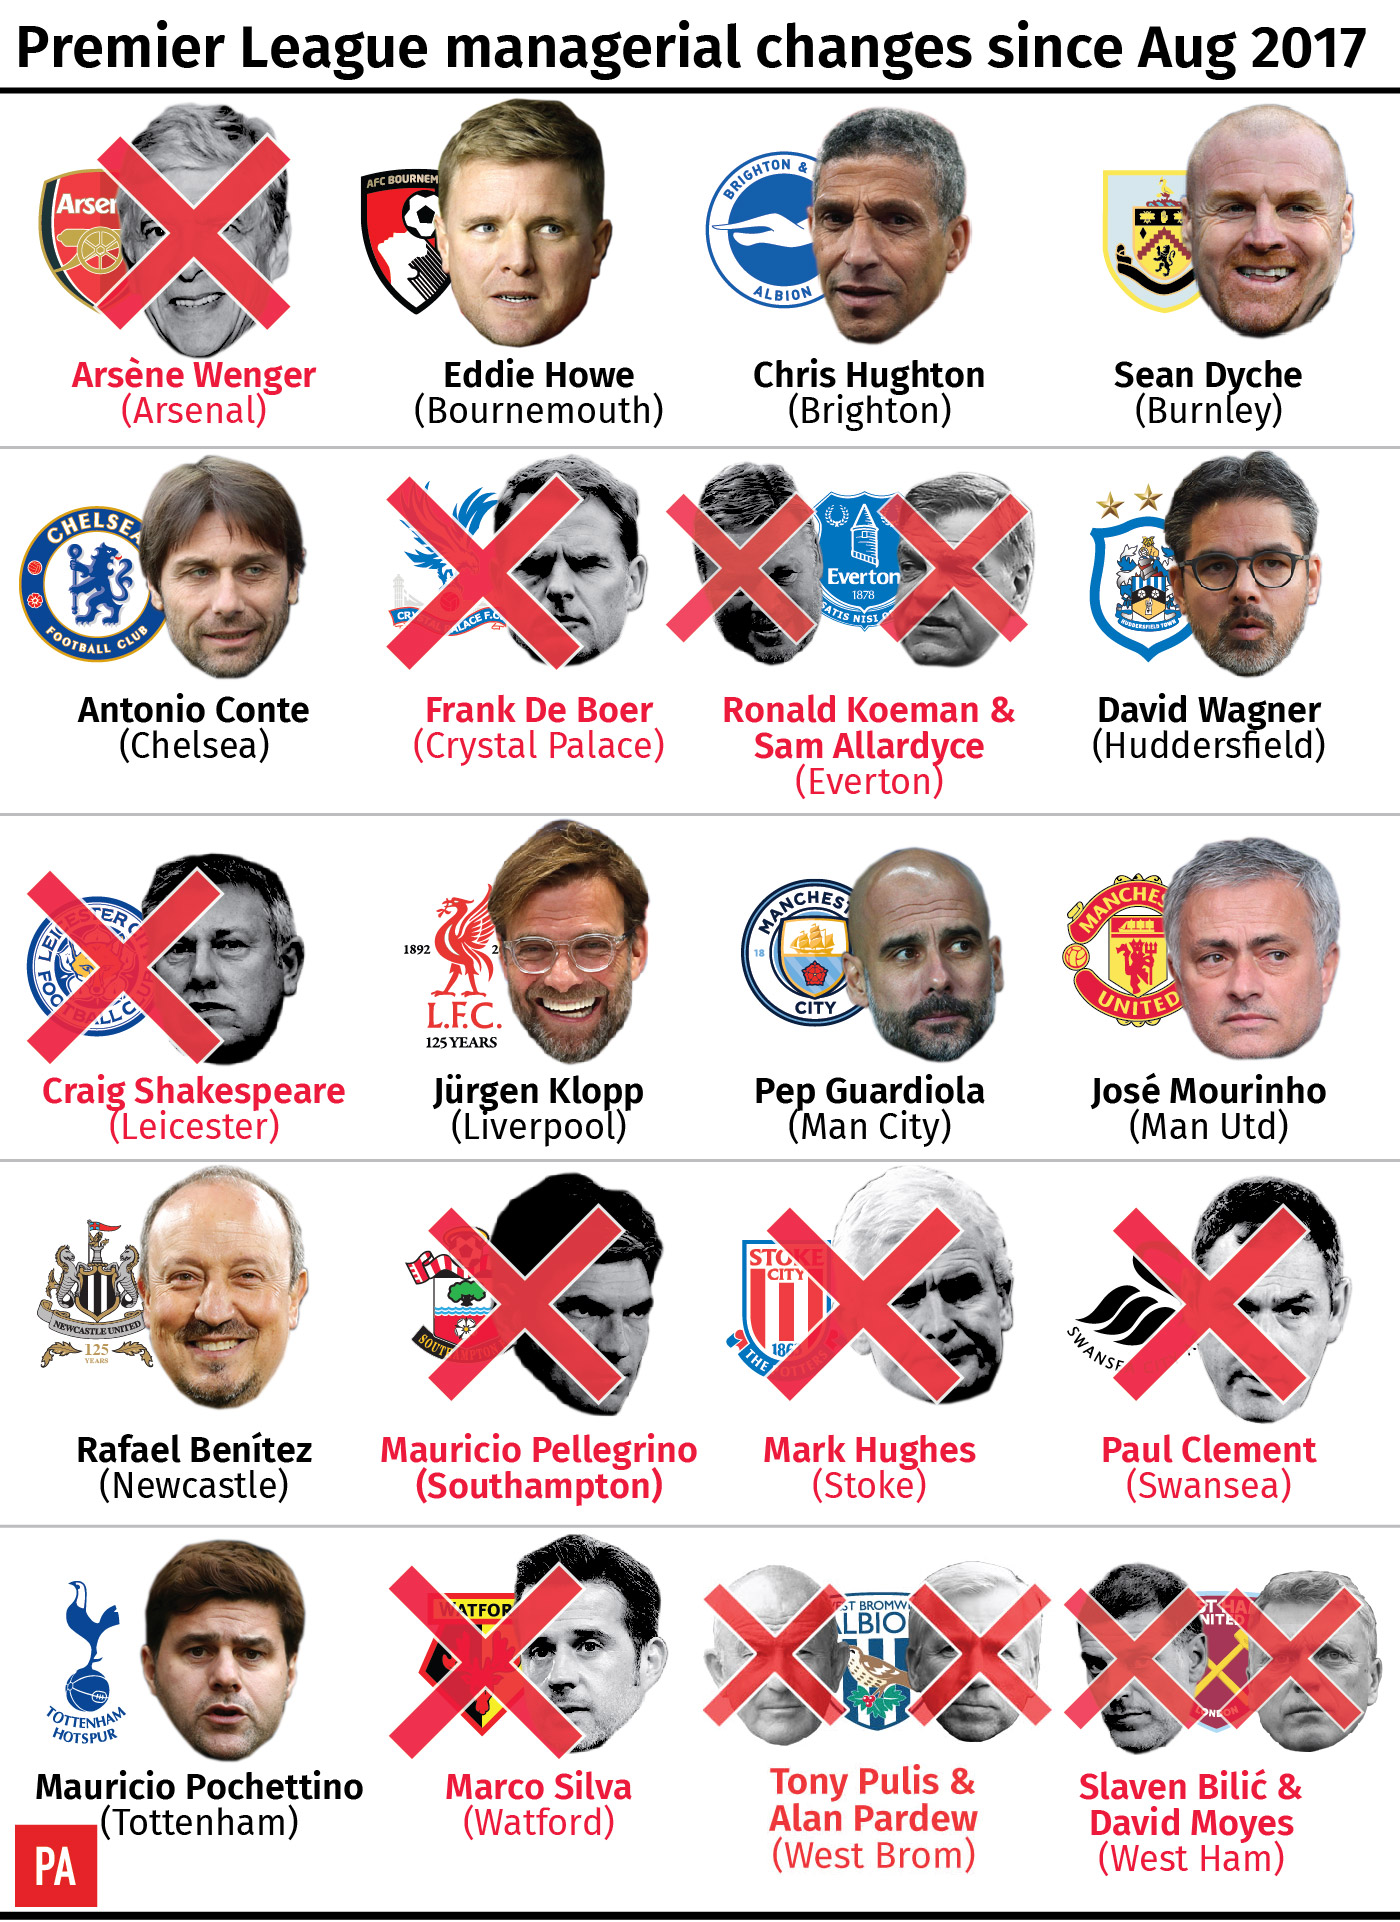 Premier League managerial changes since August 2017